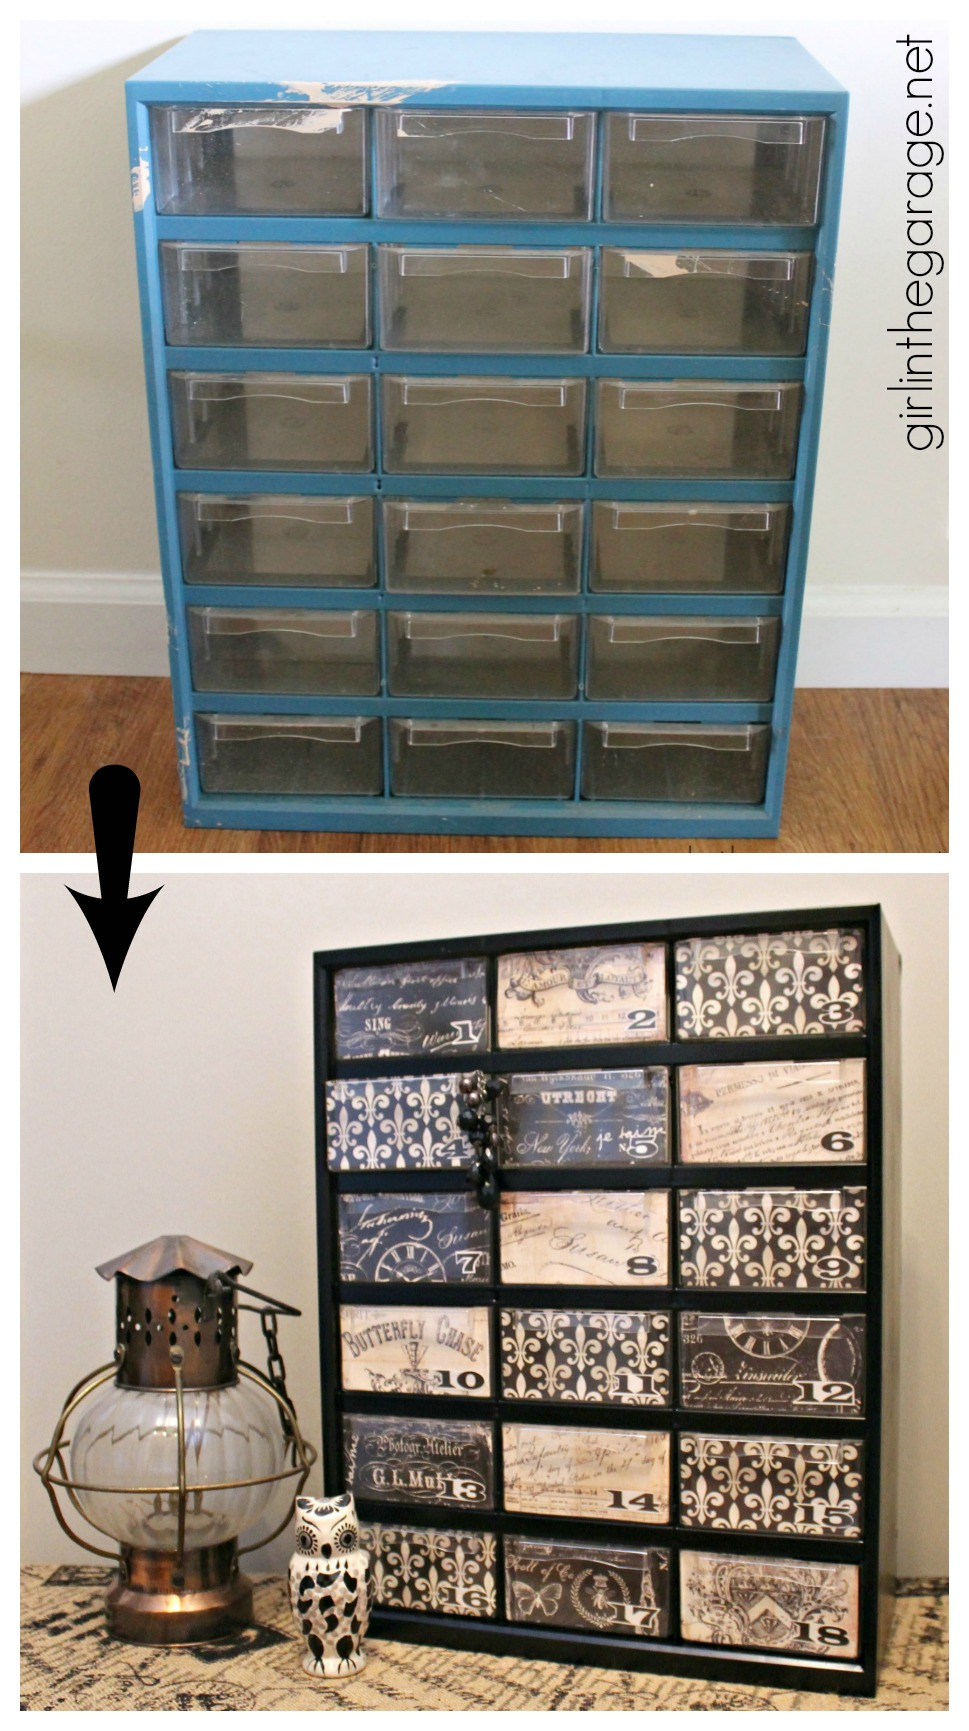 Garage Storage Organizer Makeover - Trash to Treasure - Girl in the Garage